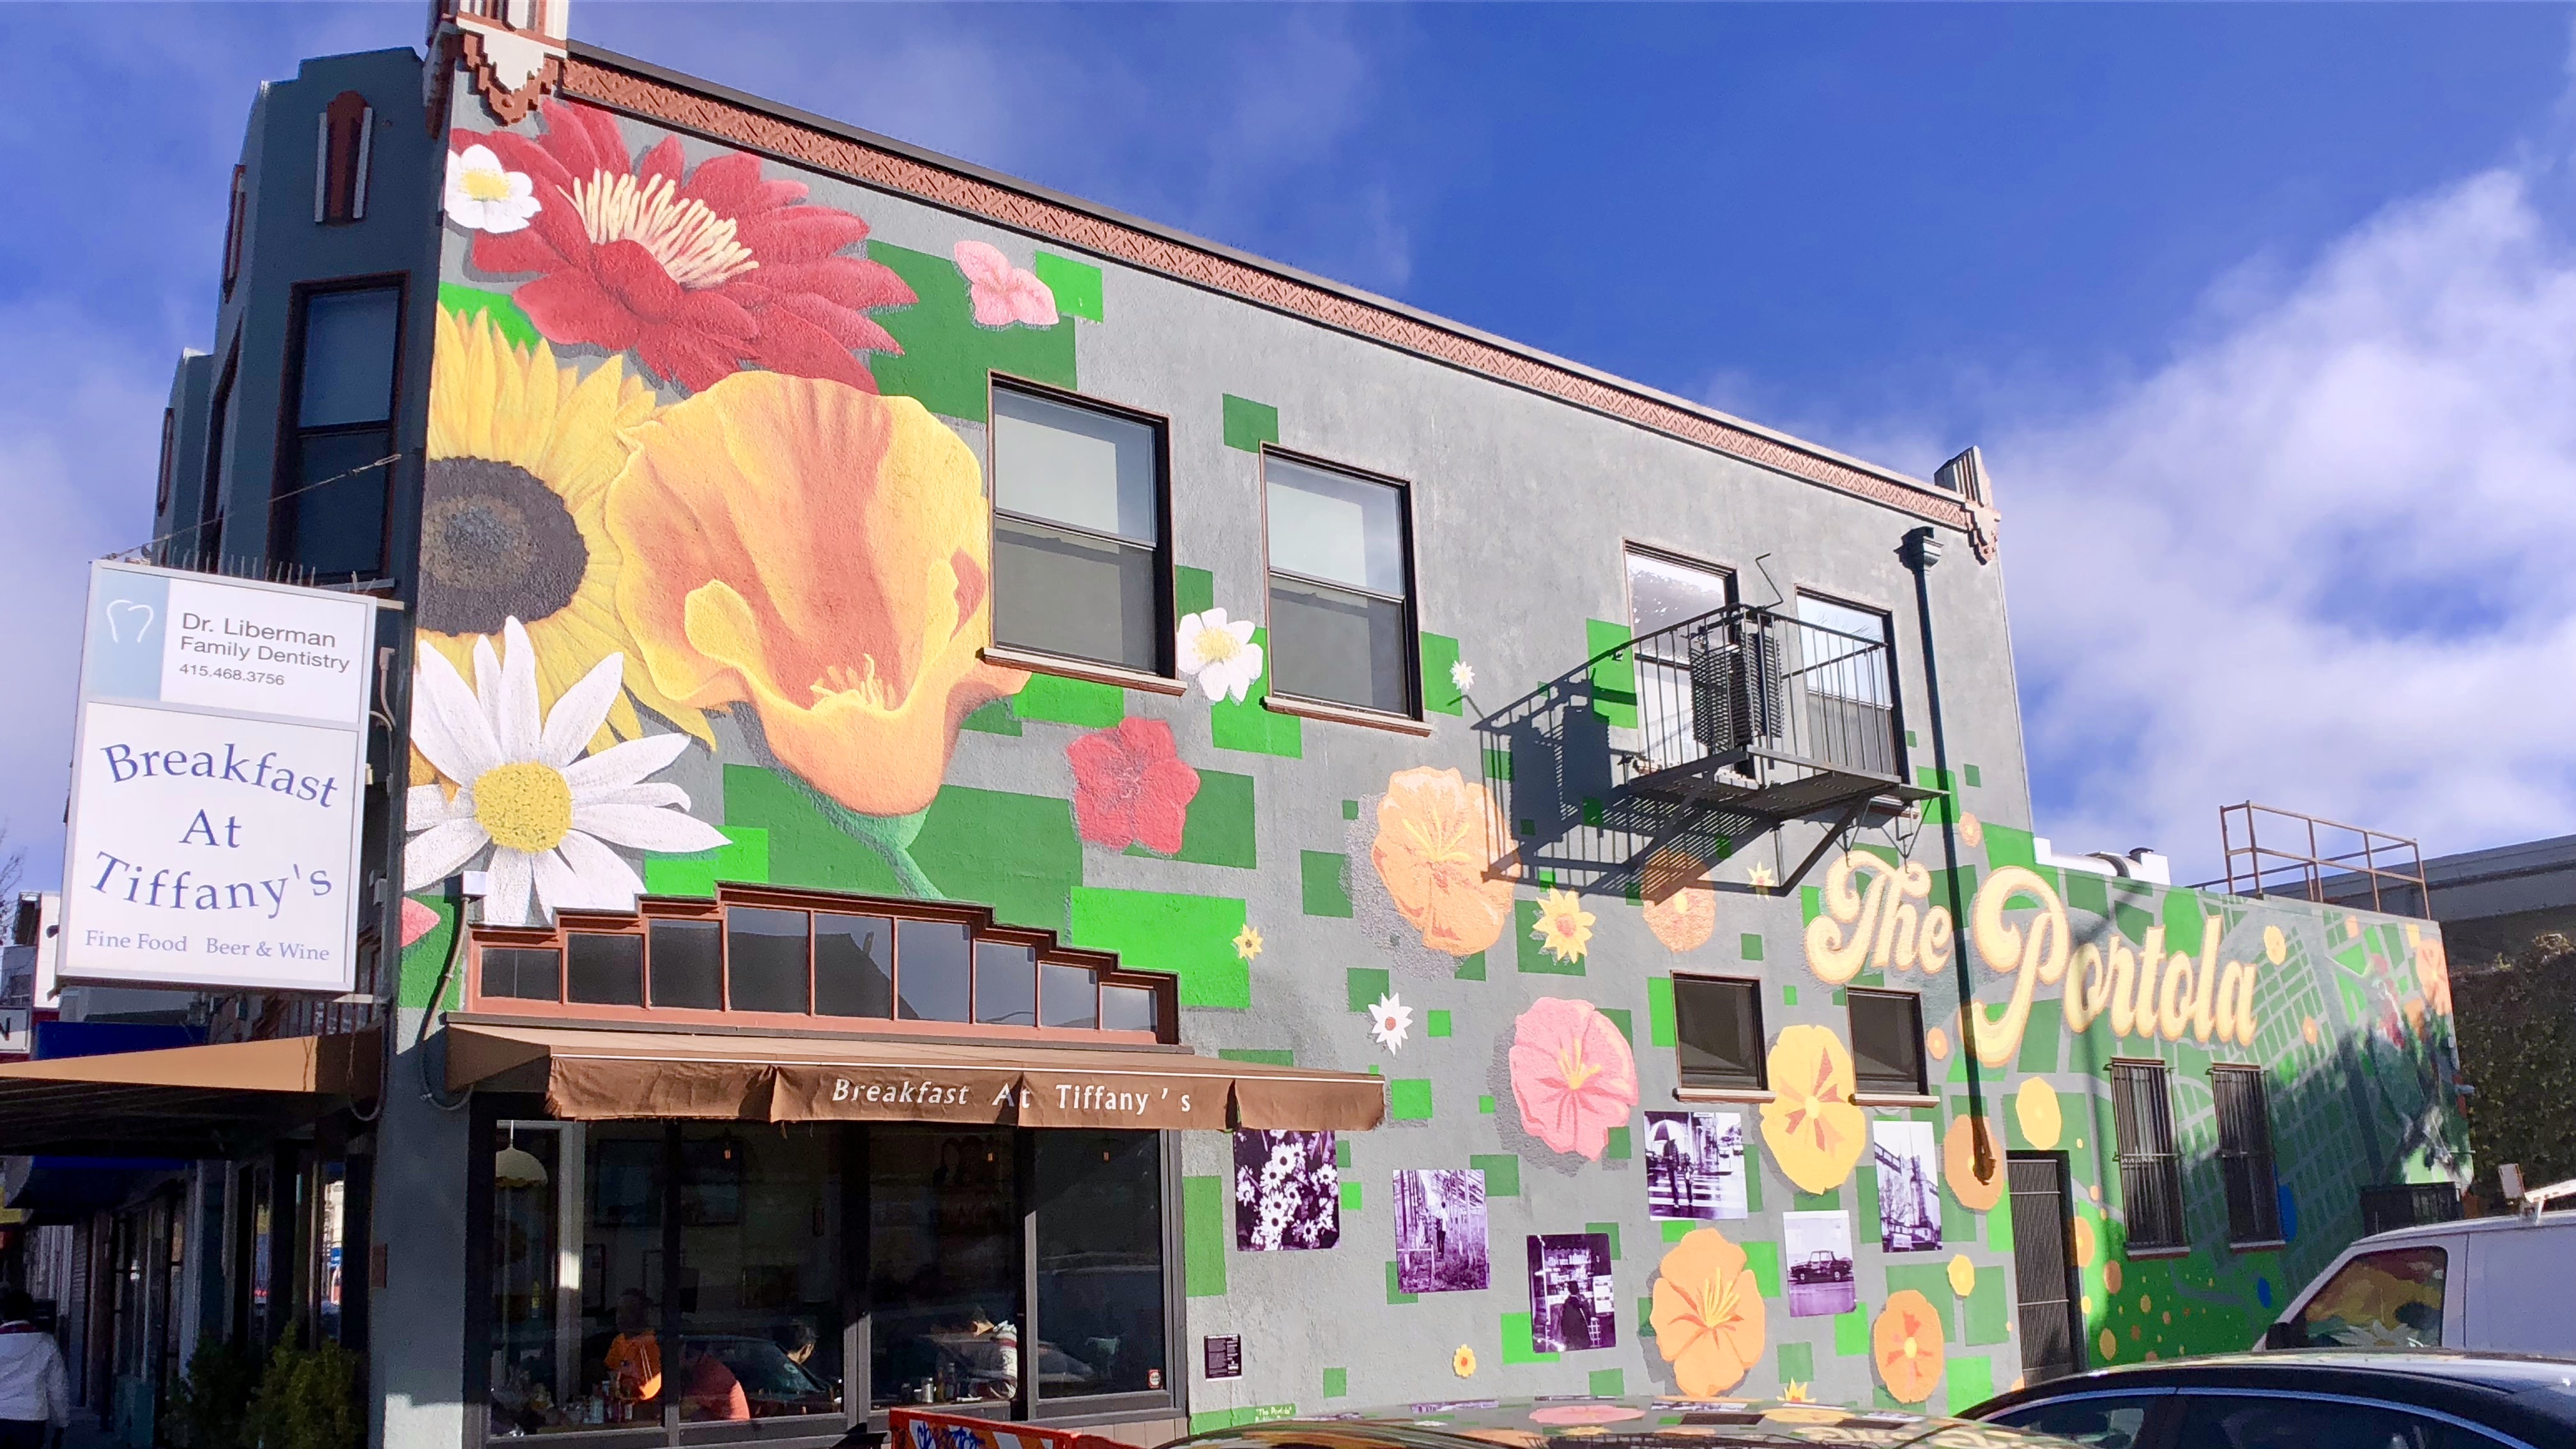 A colorful mural of flowers and abstract shapes on the side of a building.